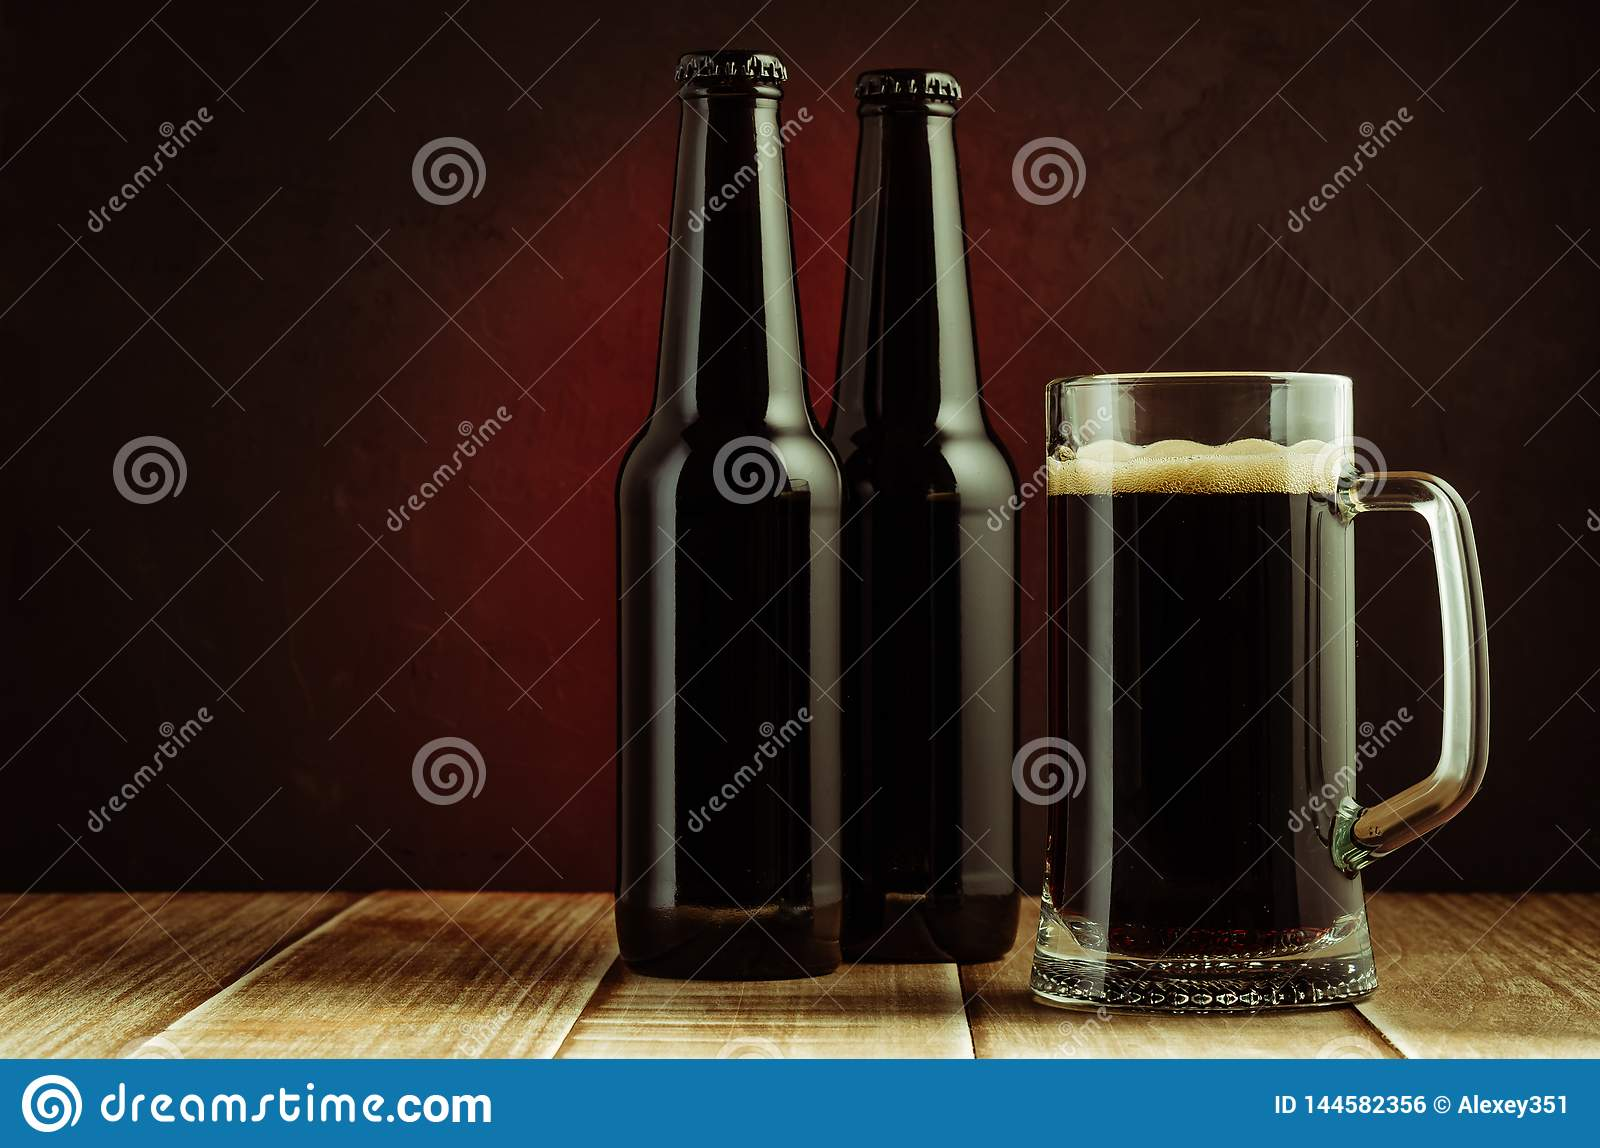 black bottle and glass beer on a red background/black bottle and glass beer on a red background of a wooden shelf. Copyspace and